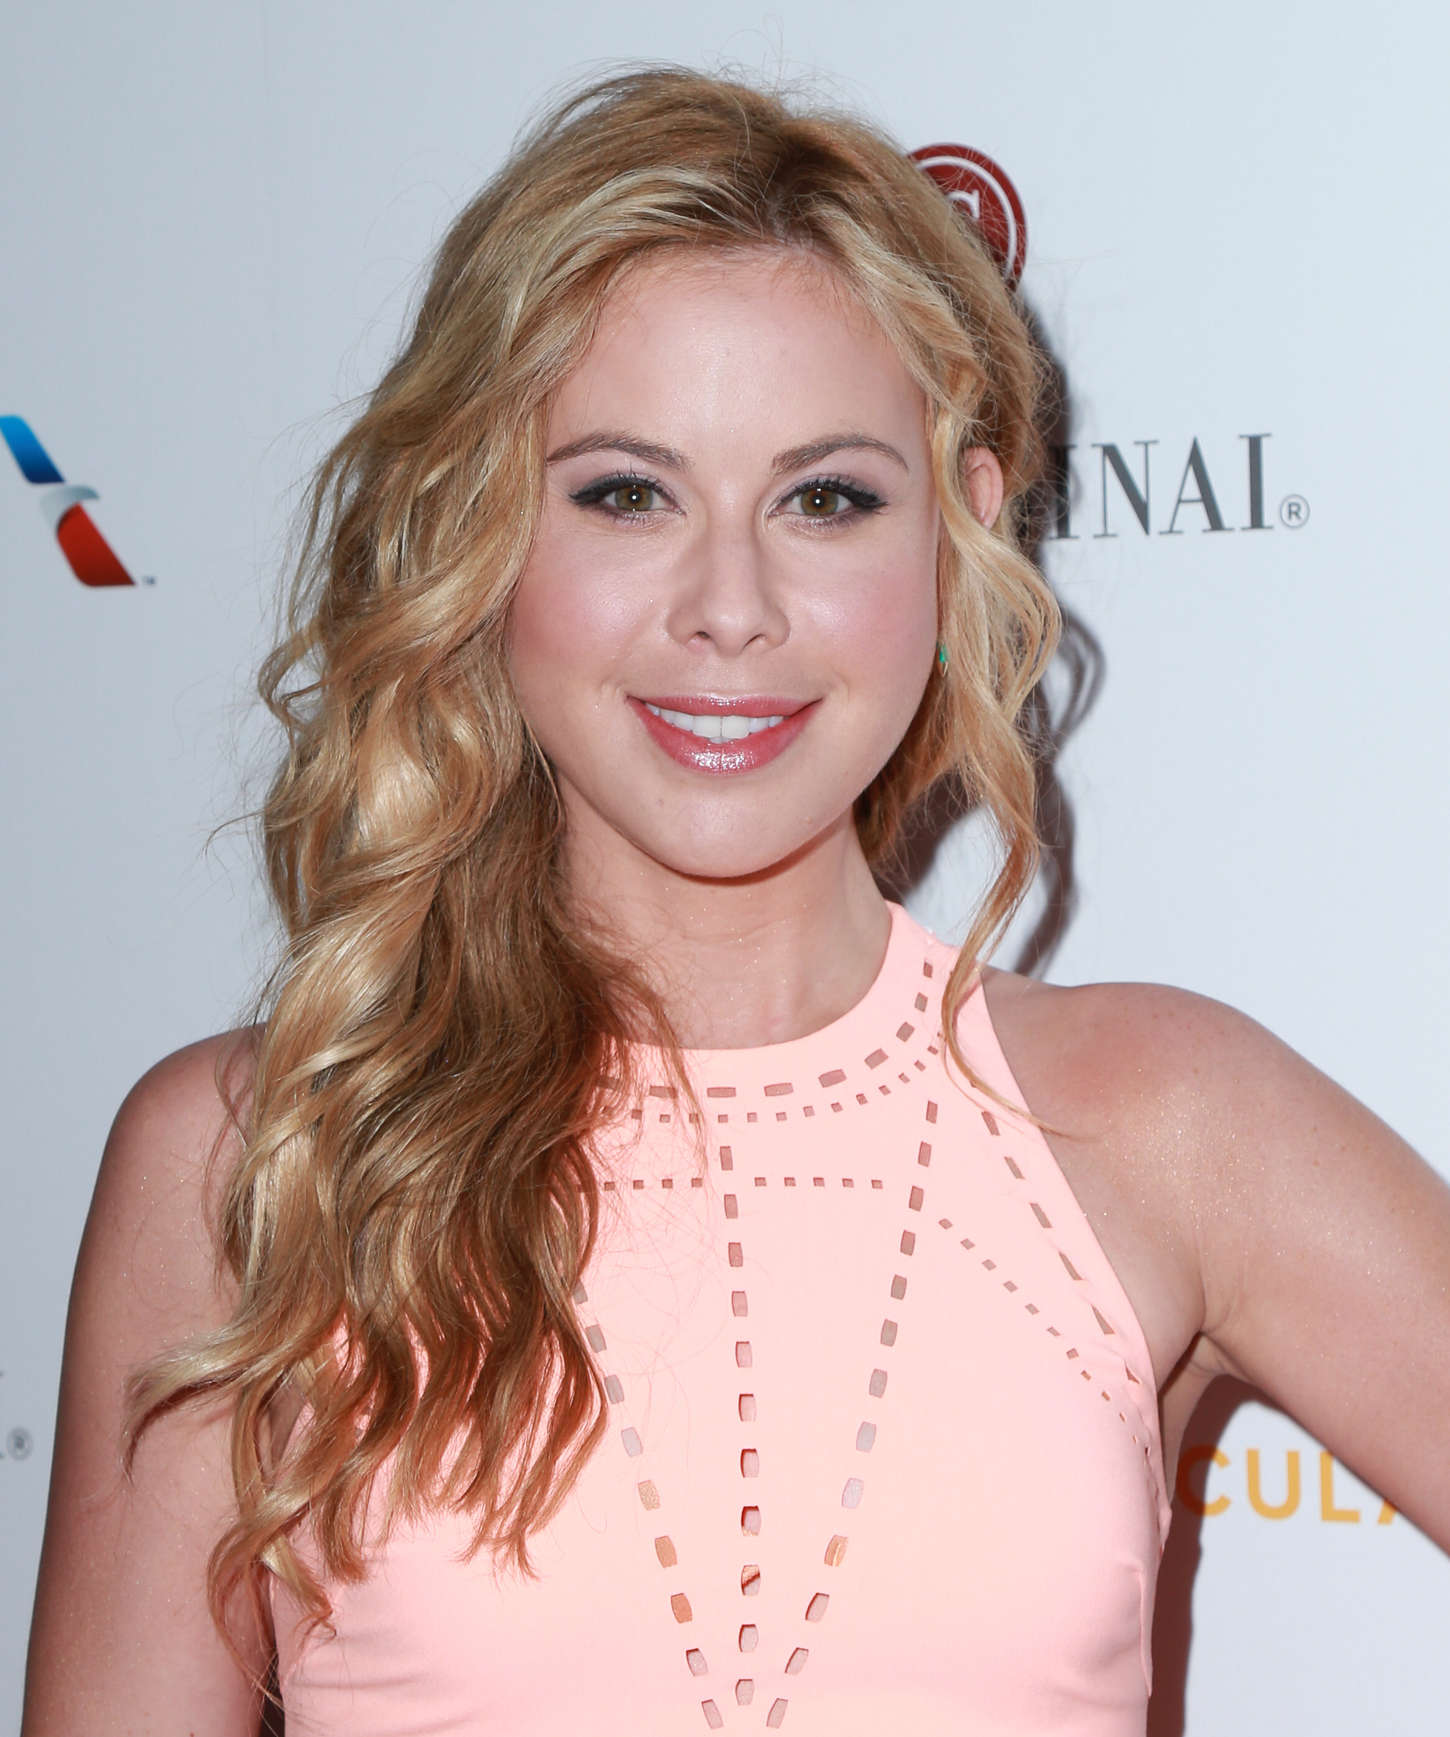 Tara Lipinski Cedars-Sinai Sports Spectacular in Century City